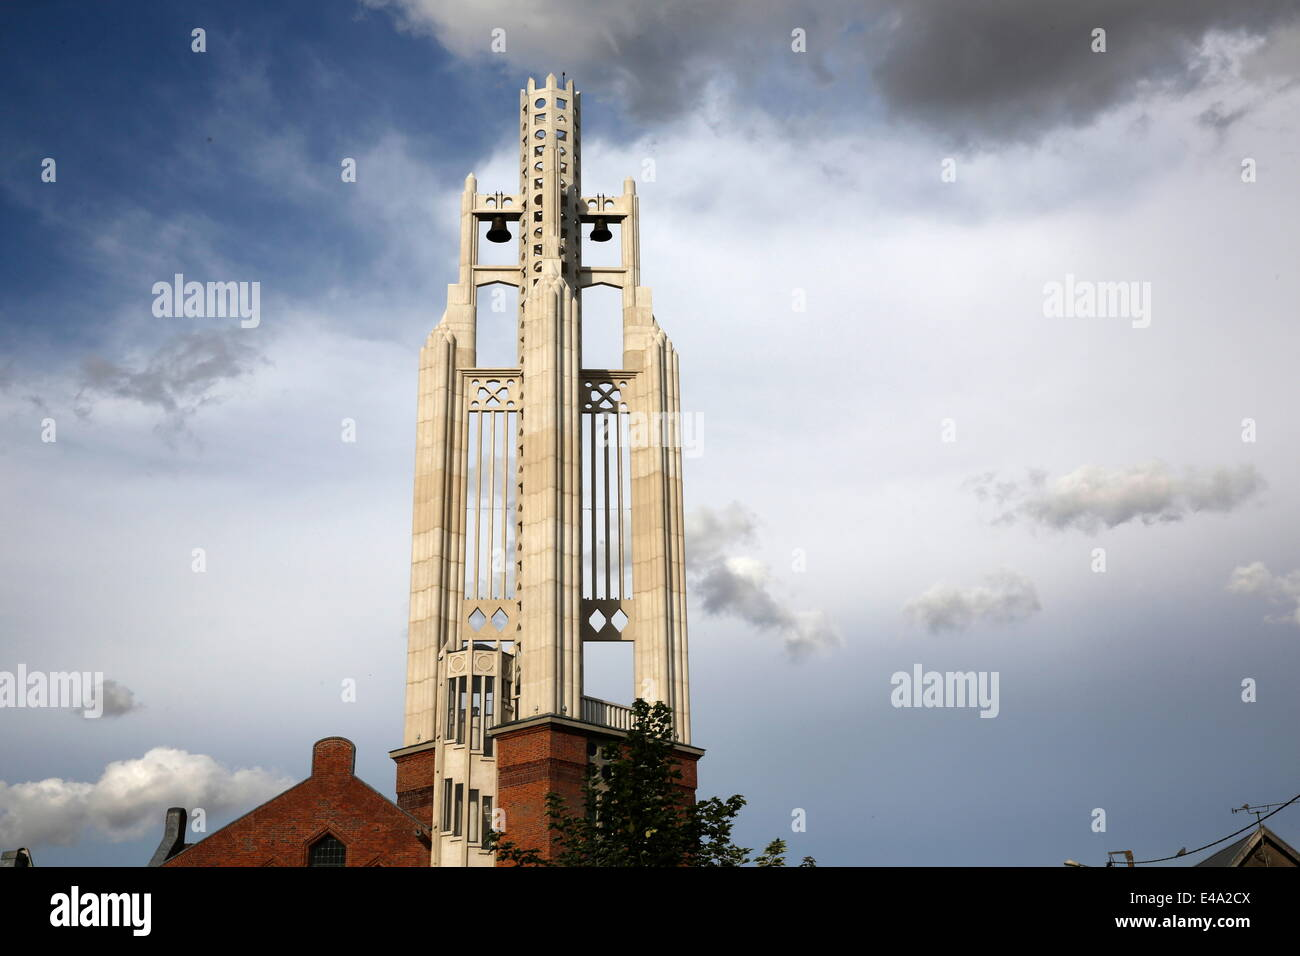 Church spire of Our Lady of Rocquigny, Somme, France, Europe - Stock Image